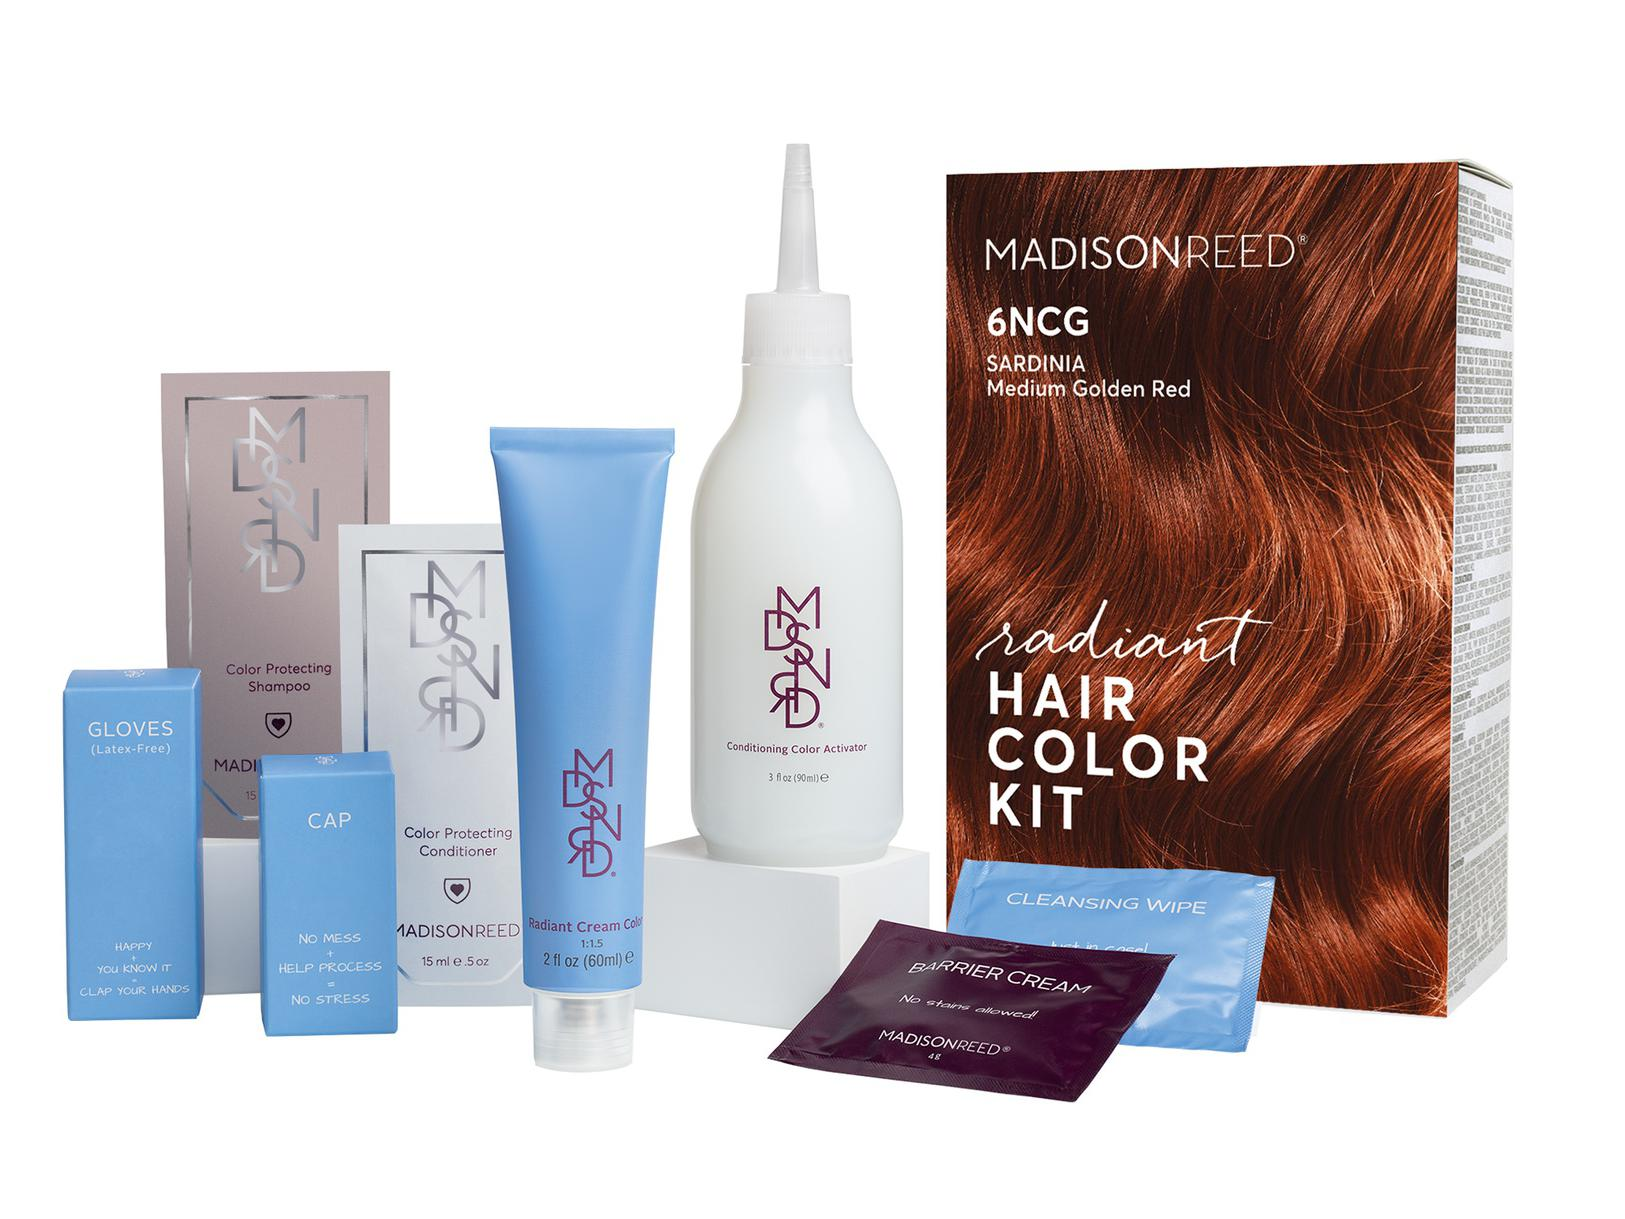 The Perfect Hue: As home hair color sales were stagnating, premium offerings like Madison Reed emerged, falling in-between pricier salon options and traditional mass offerings.